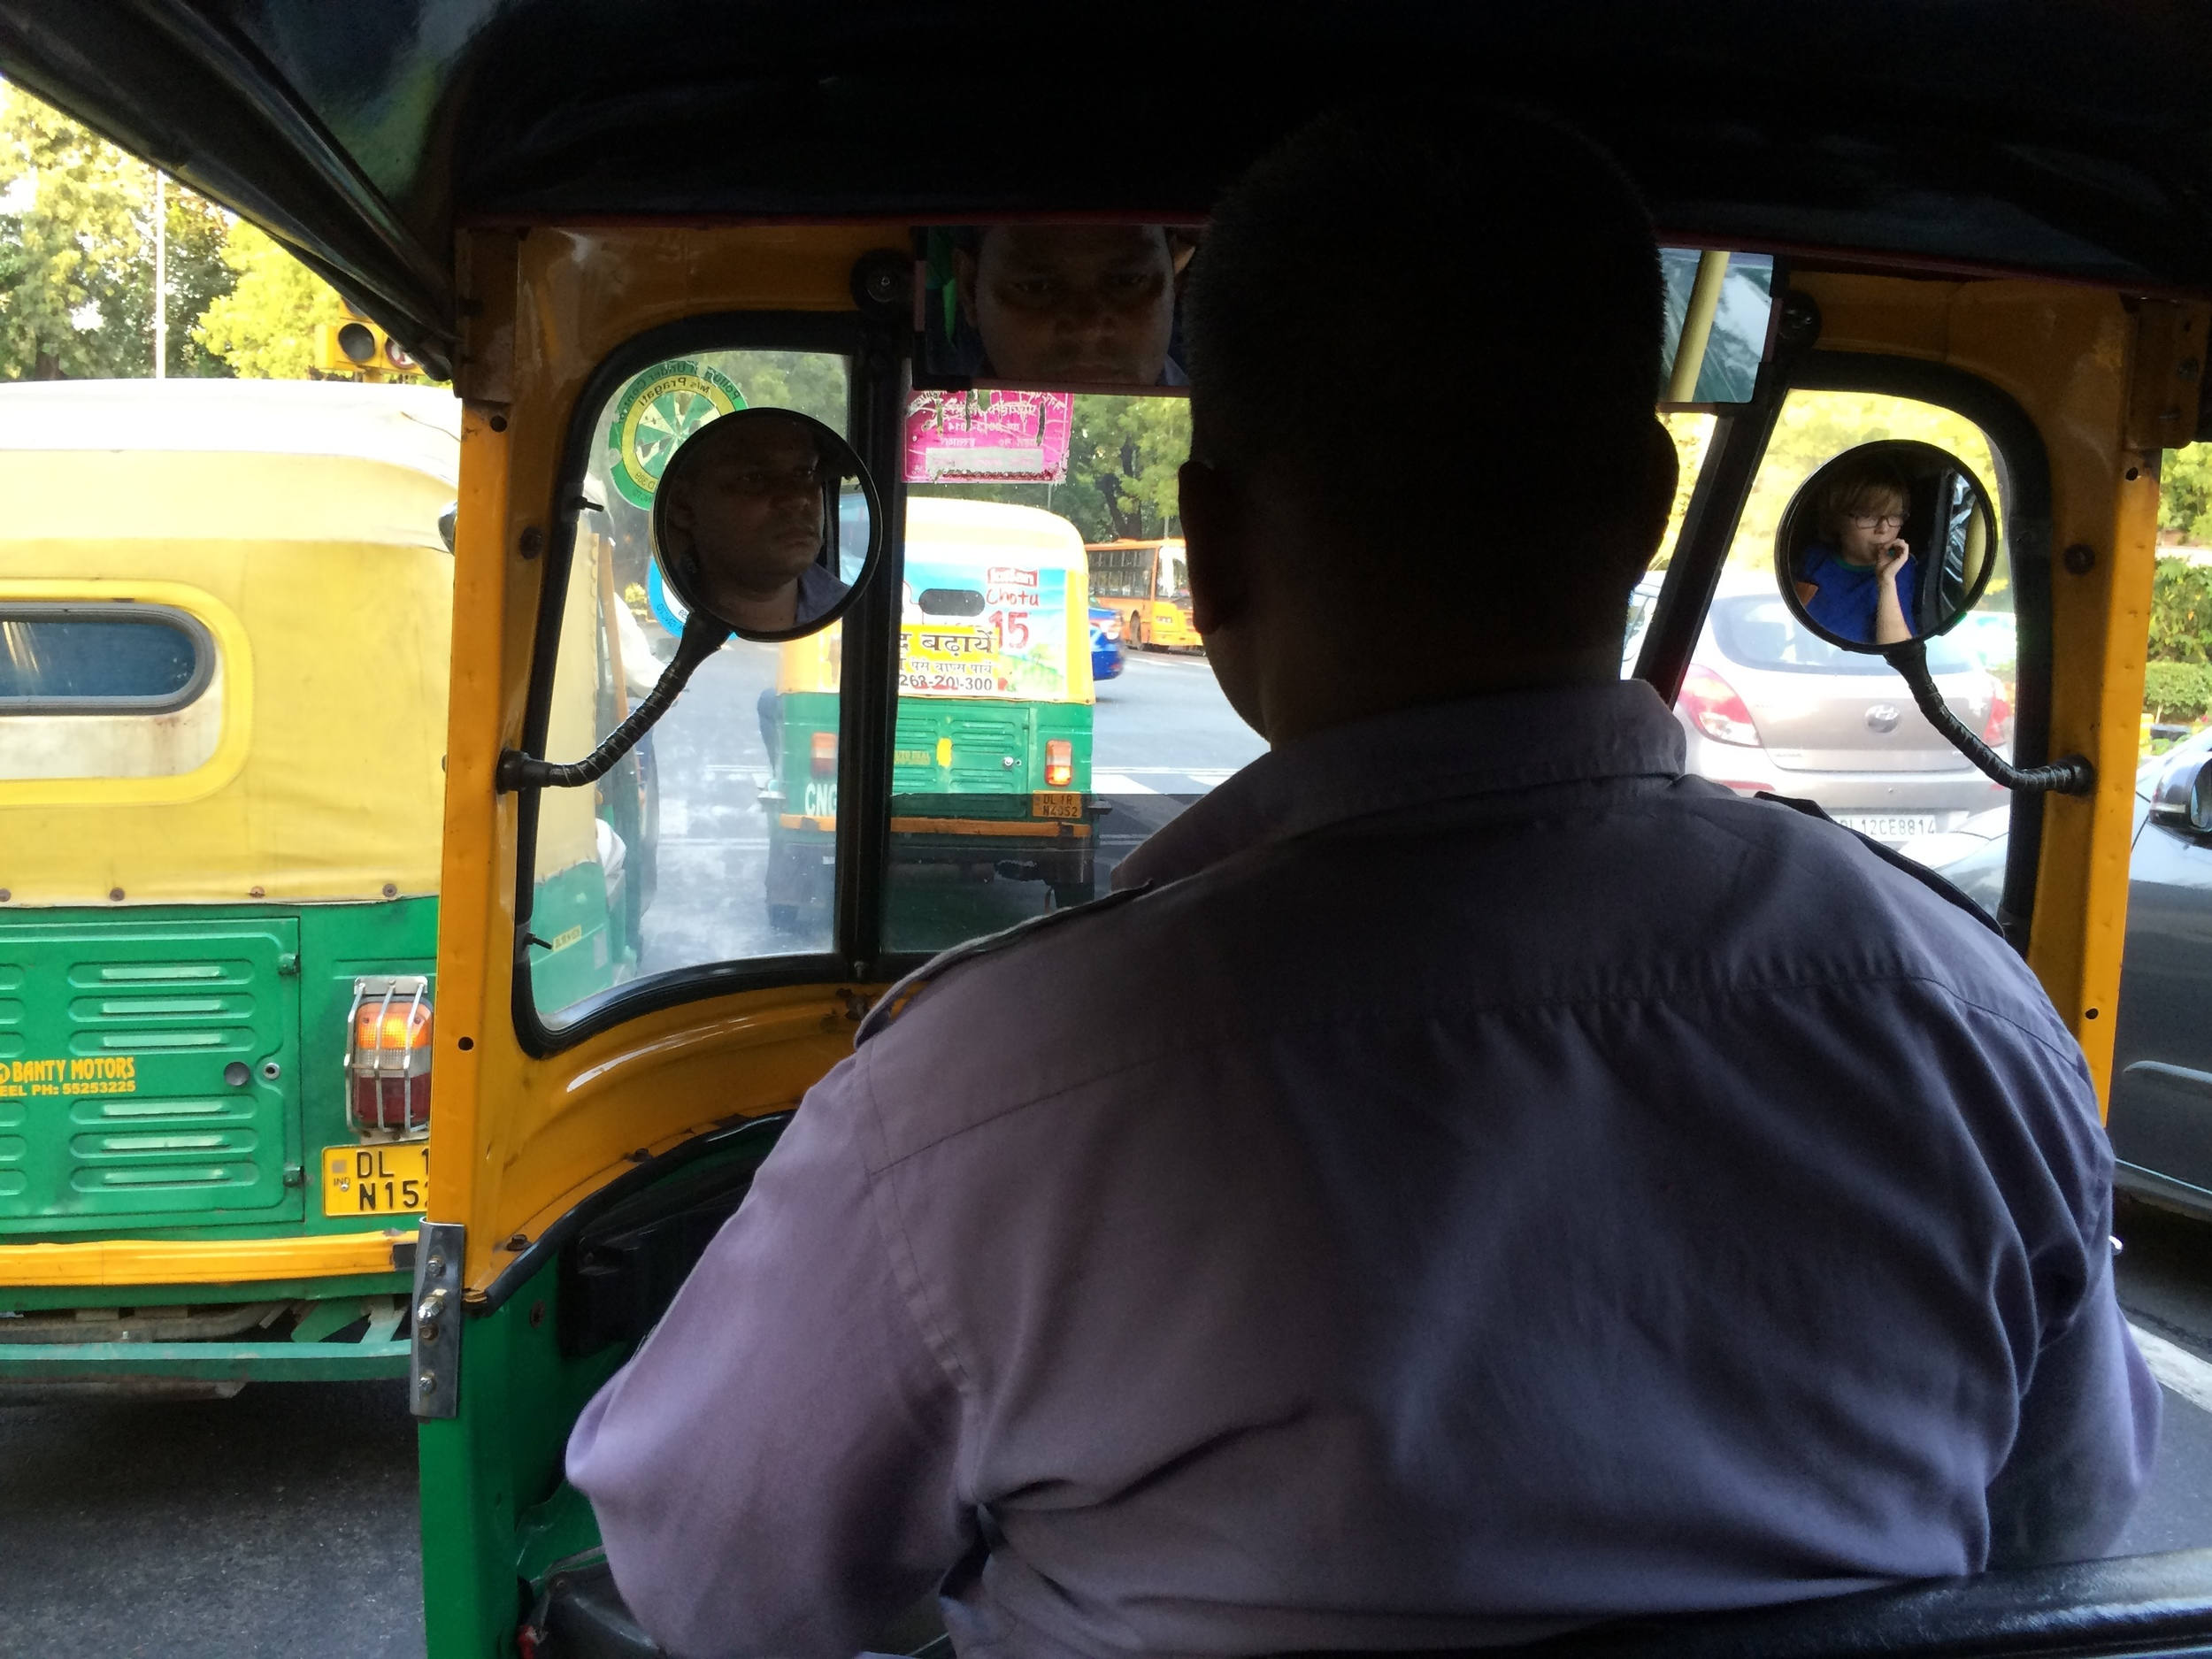 Elliot on board a New Delhi auto-rickshaw.